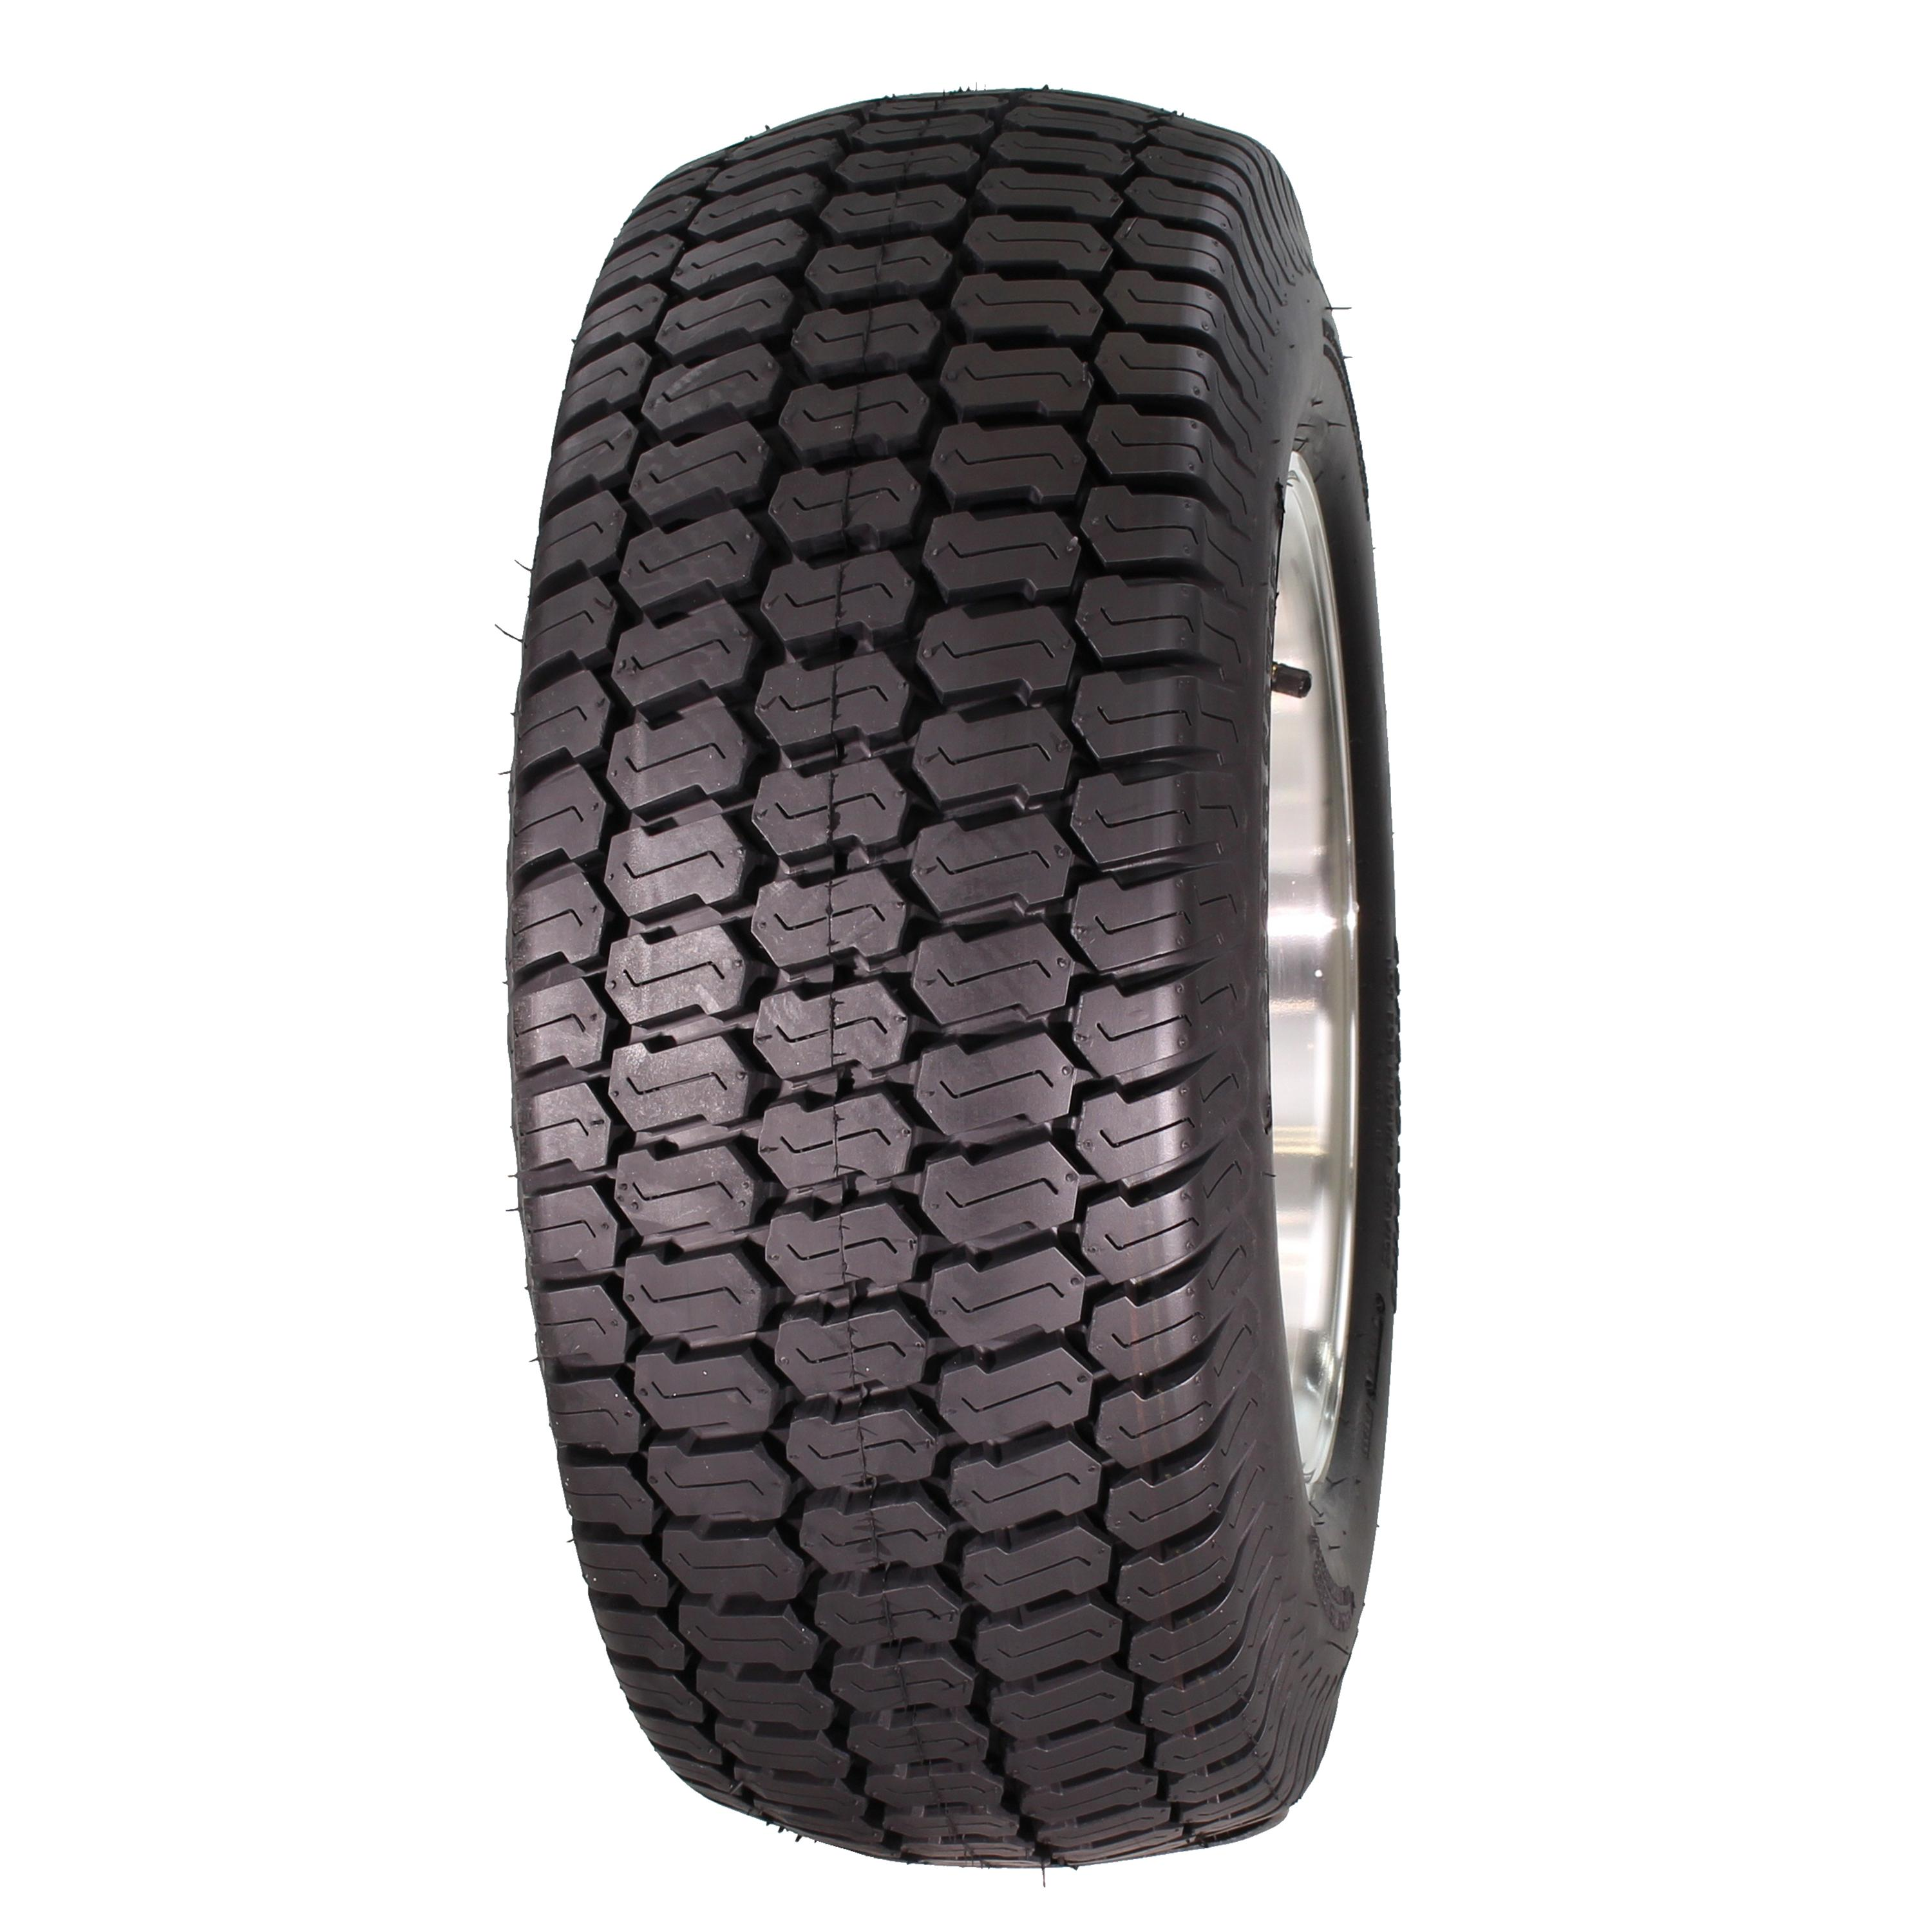 Greenball Transmaster Ultra Turf 20X10.00-8 6 Ply Lawn and Garden Tire (Tire Only)